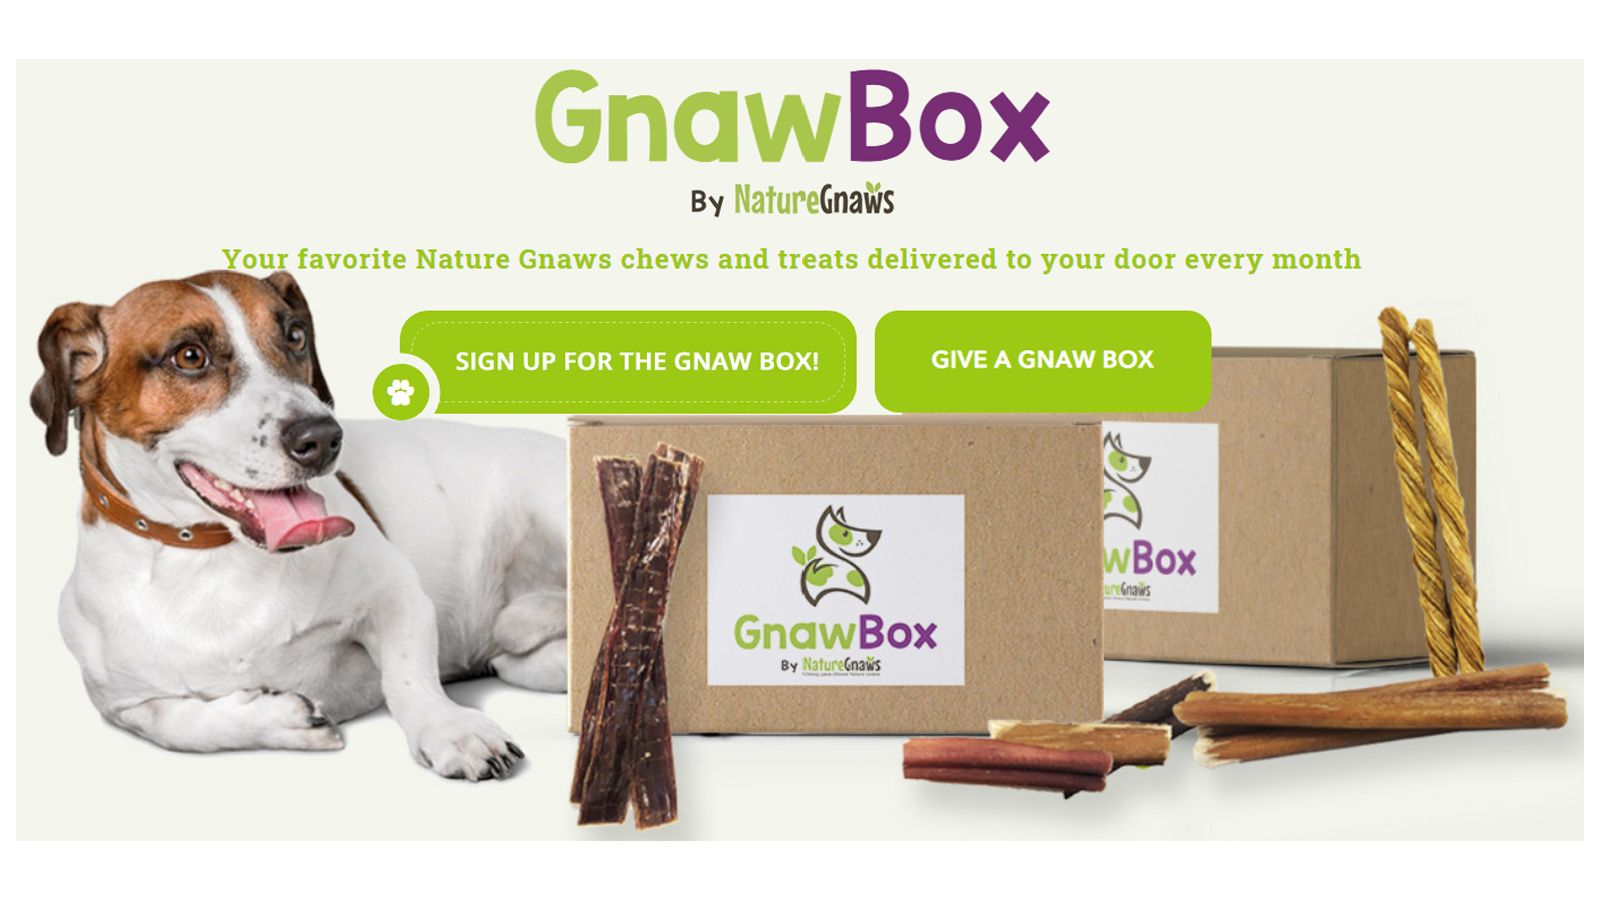 GnawBox best subscription box for natural dog treats and chews